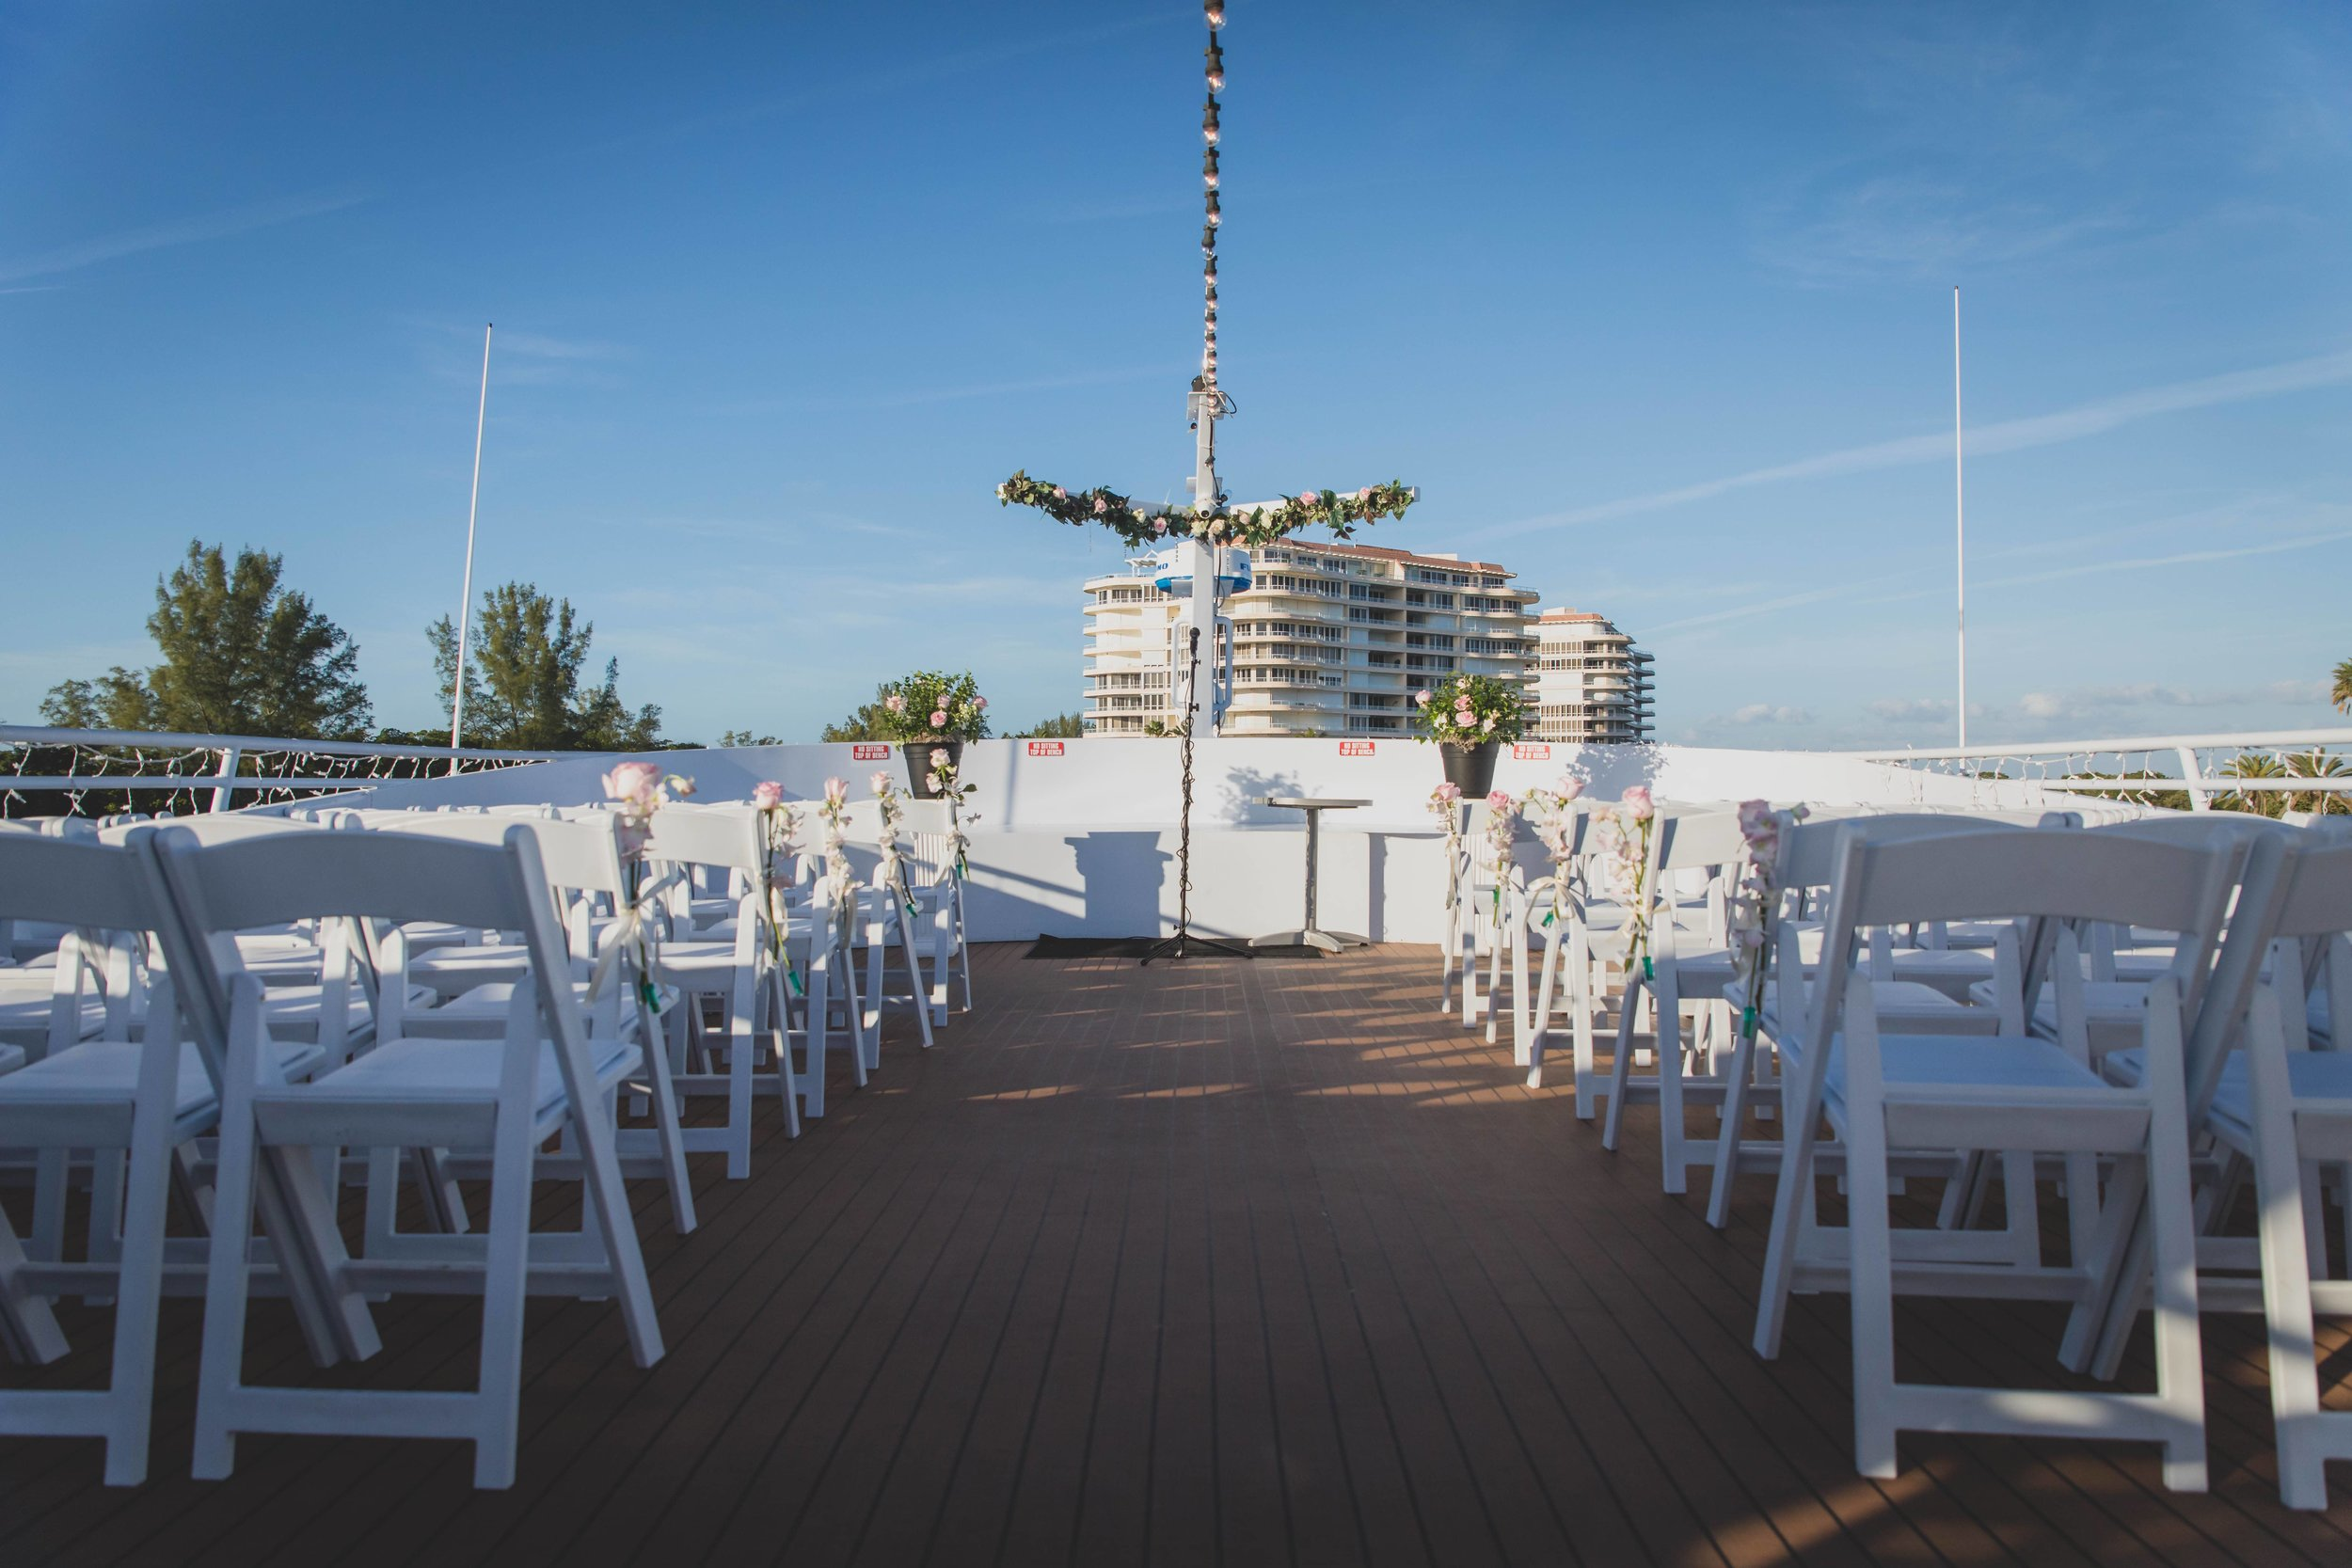 An open sky nautical wedding ceremony on the deck of a ship/yacht.